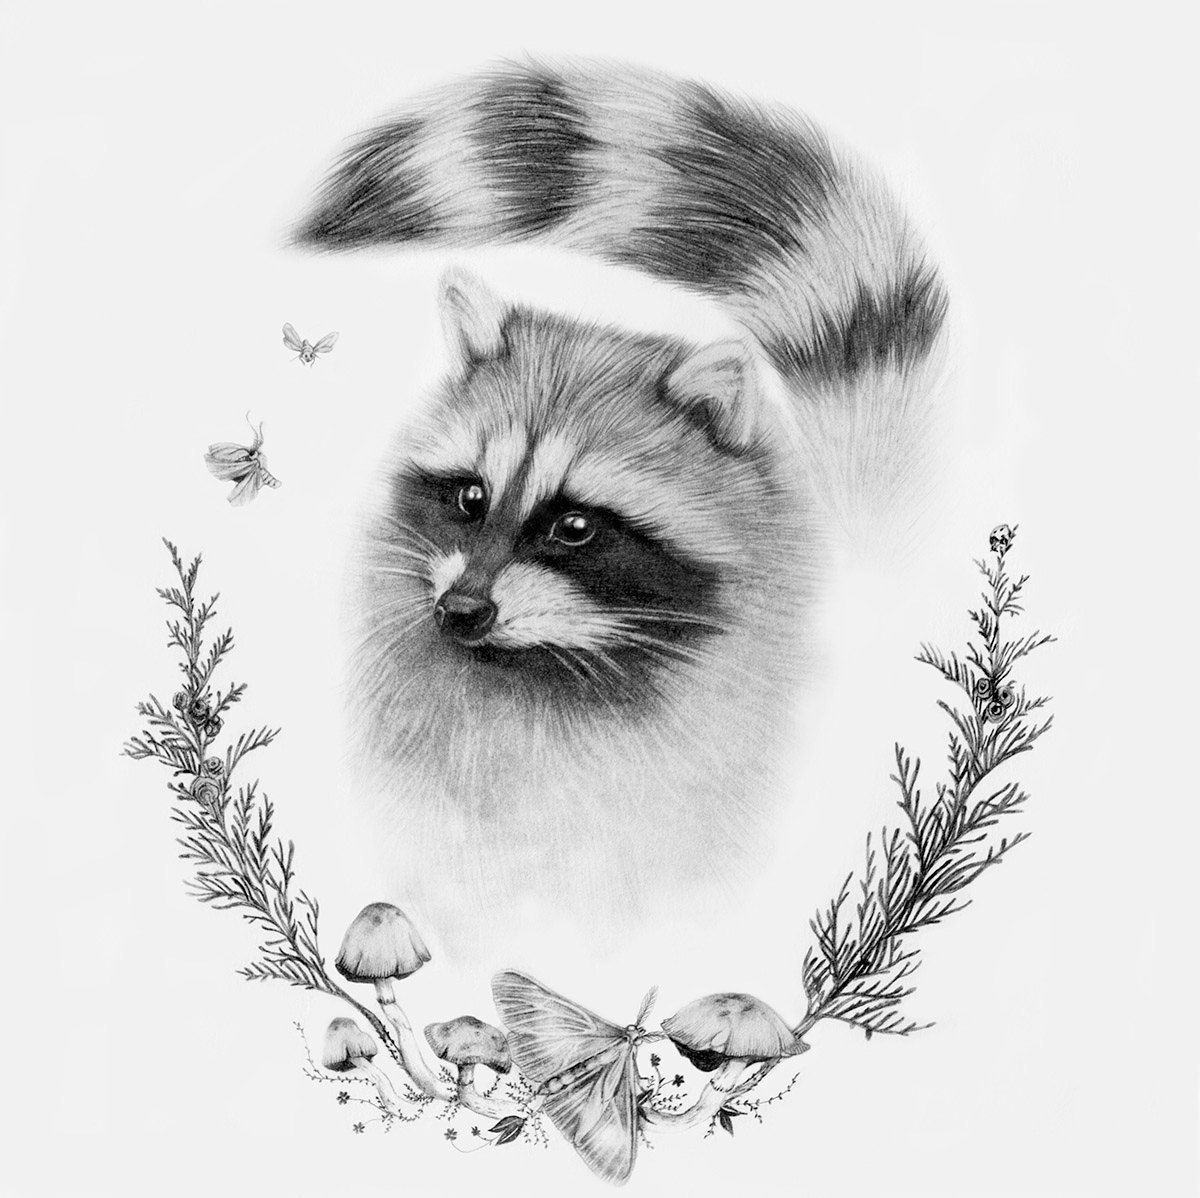 raccoon drawing 275 best images about raccoons drawings and paintings of drawing raccoon 1 1